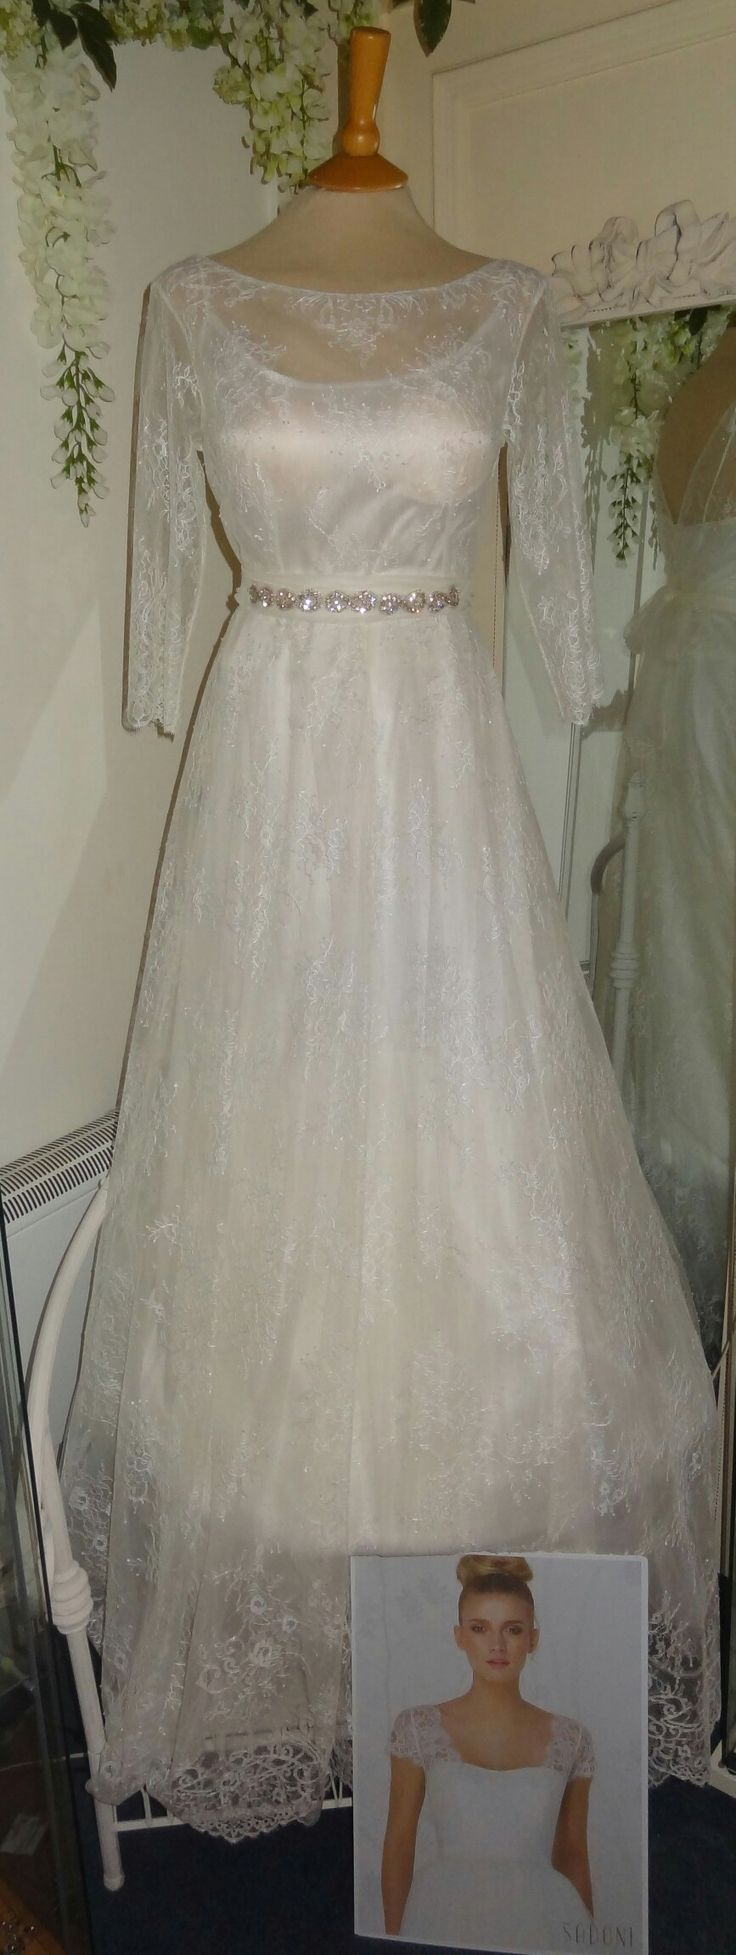 Gorgeous Lara. Lace gown with satin underlay. Wedding dress by Sadoni. Available from Caroline Clark Bridal Boutique, droitwich, Worcester. Www.carolineclarkbridalboutique.co.uk